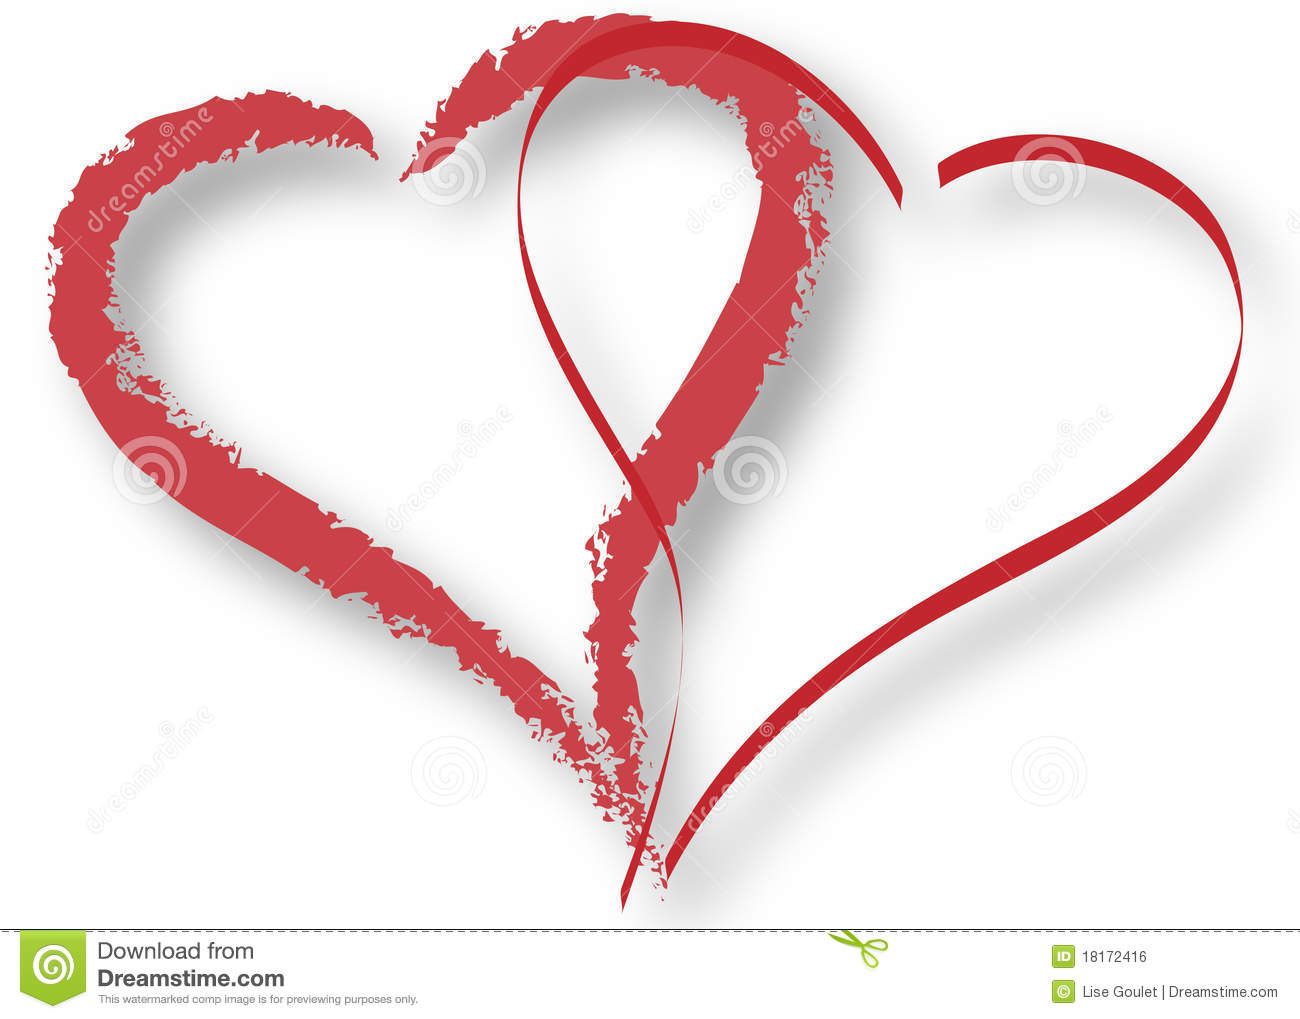 Outline of two overlapping red hearts with shadow on a white ...